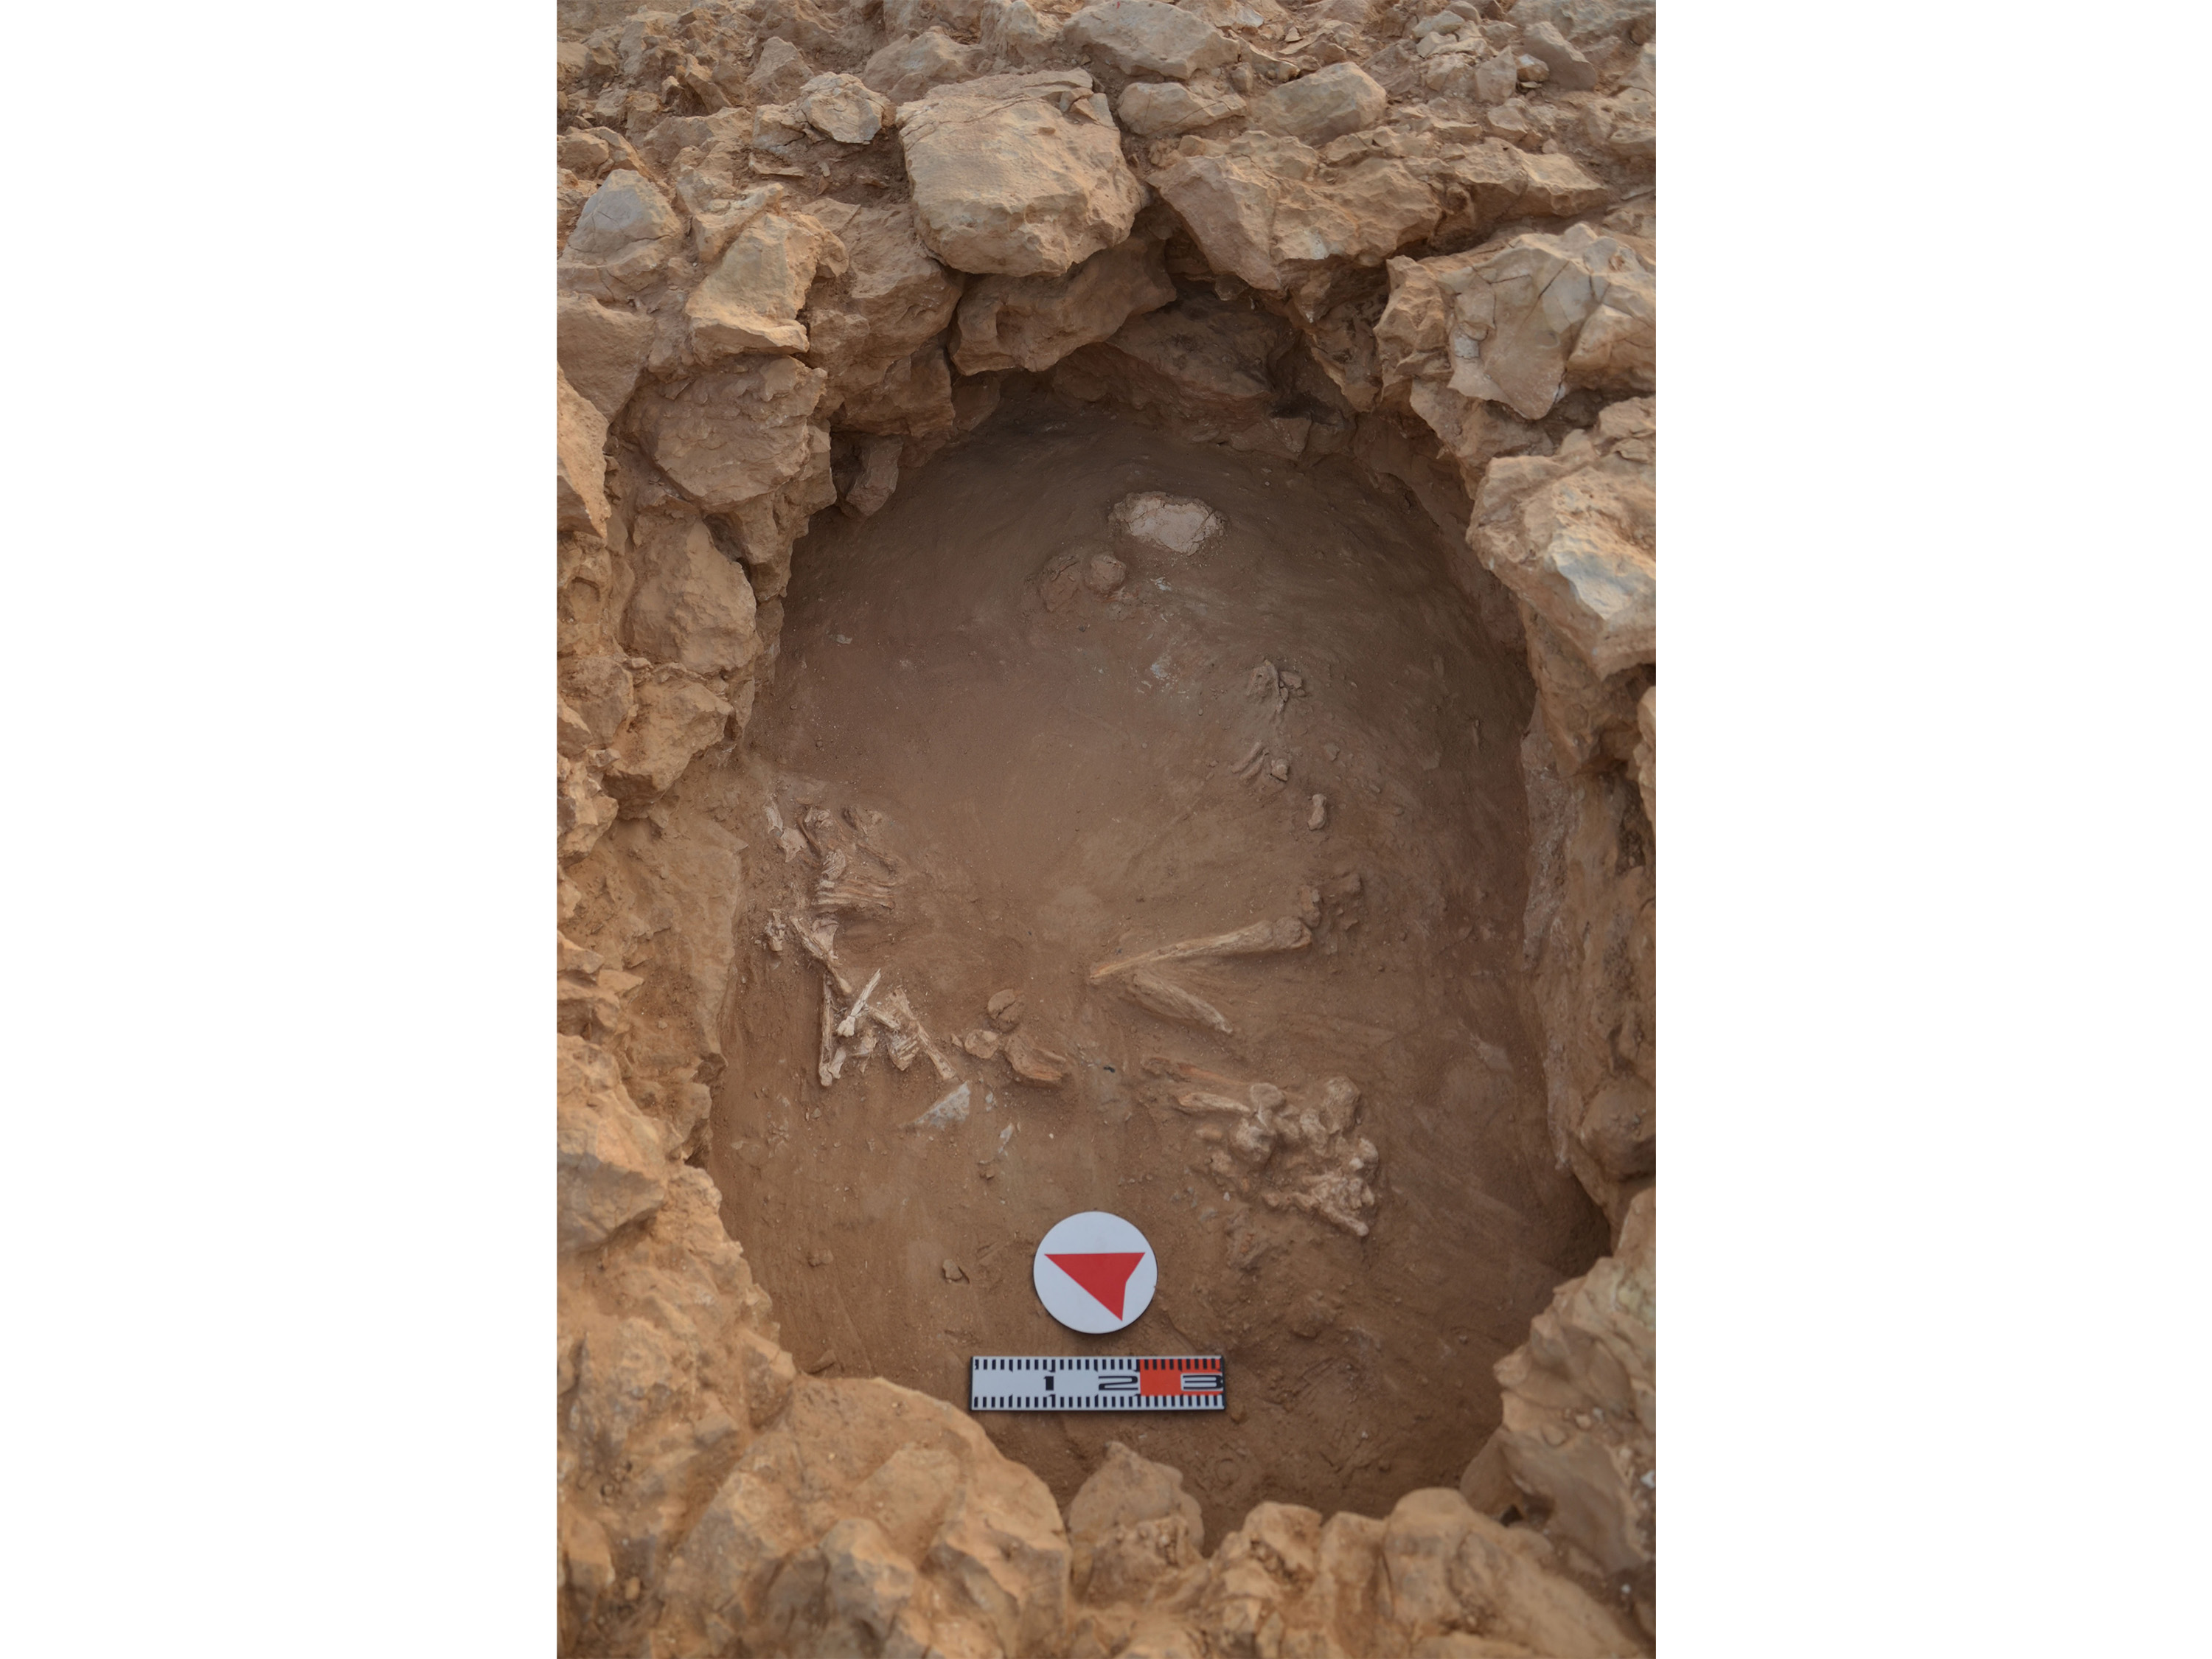 Ancient human bones unearthed from a Dilmun burial mound